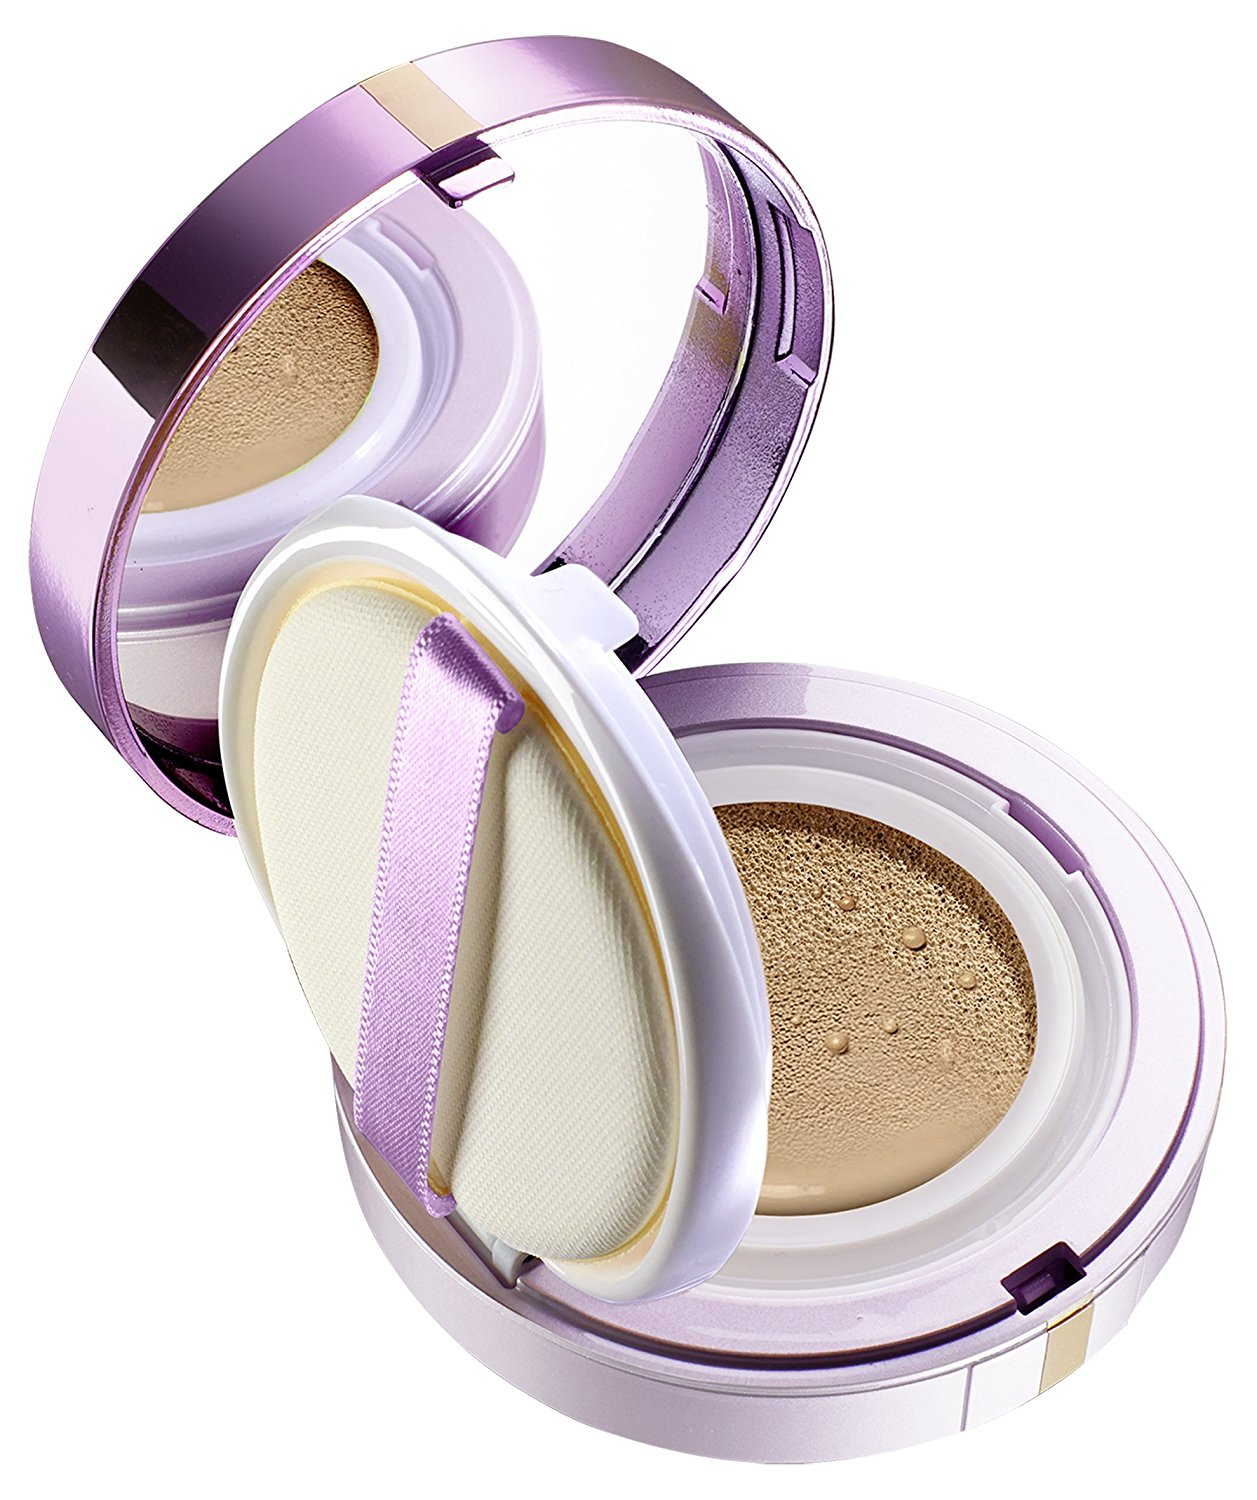 L-039-Oreal-Paris-Nude-Magique-Cushion-Foundation-14-6g-Various-Shades